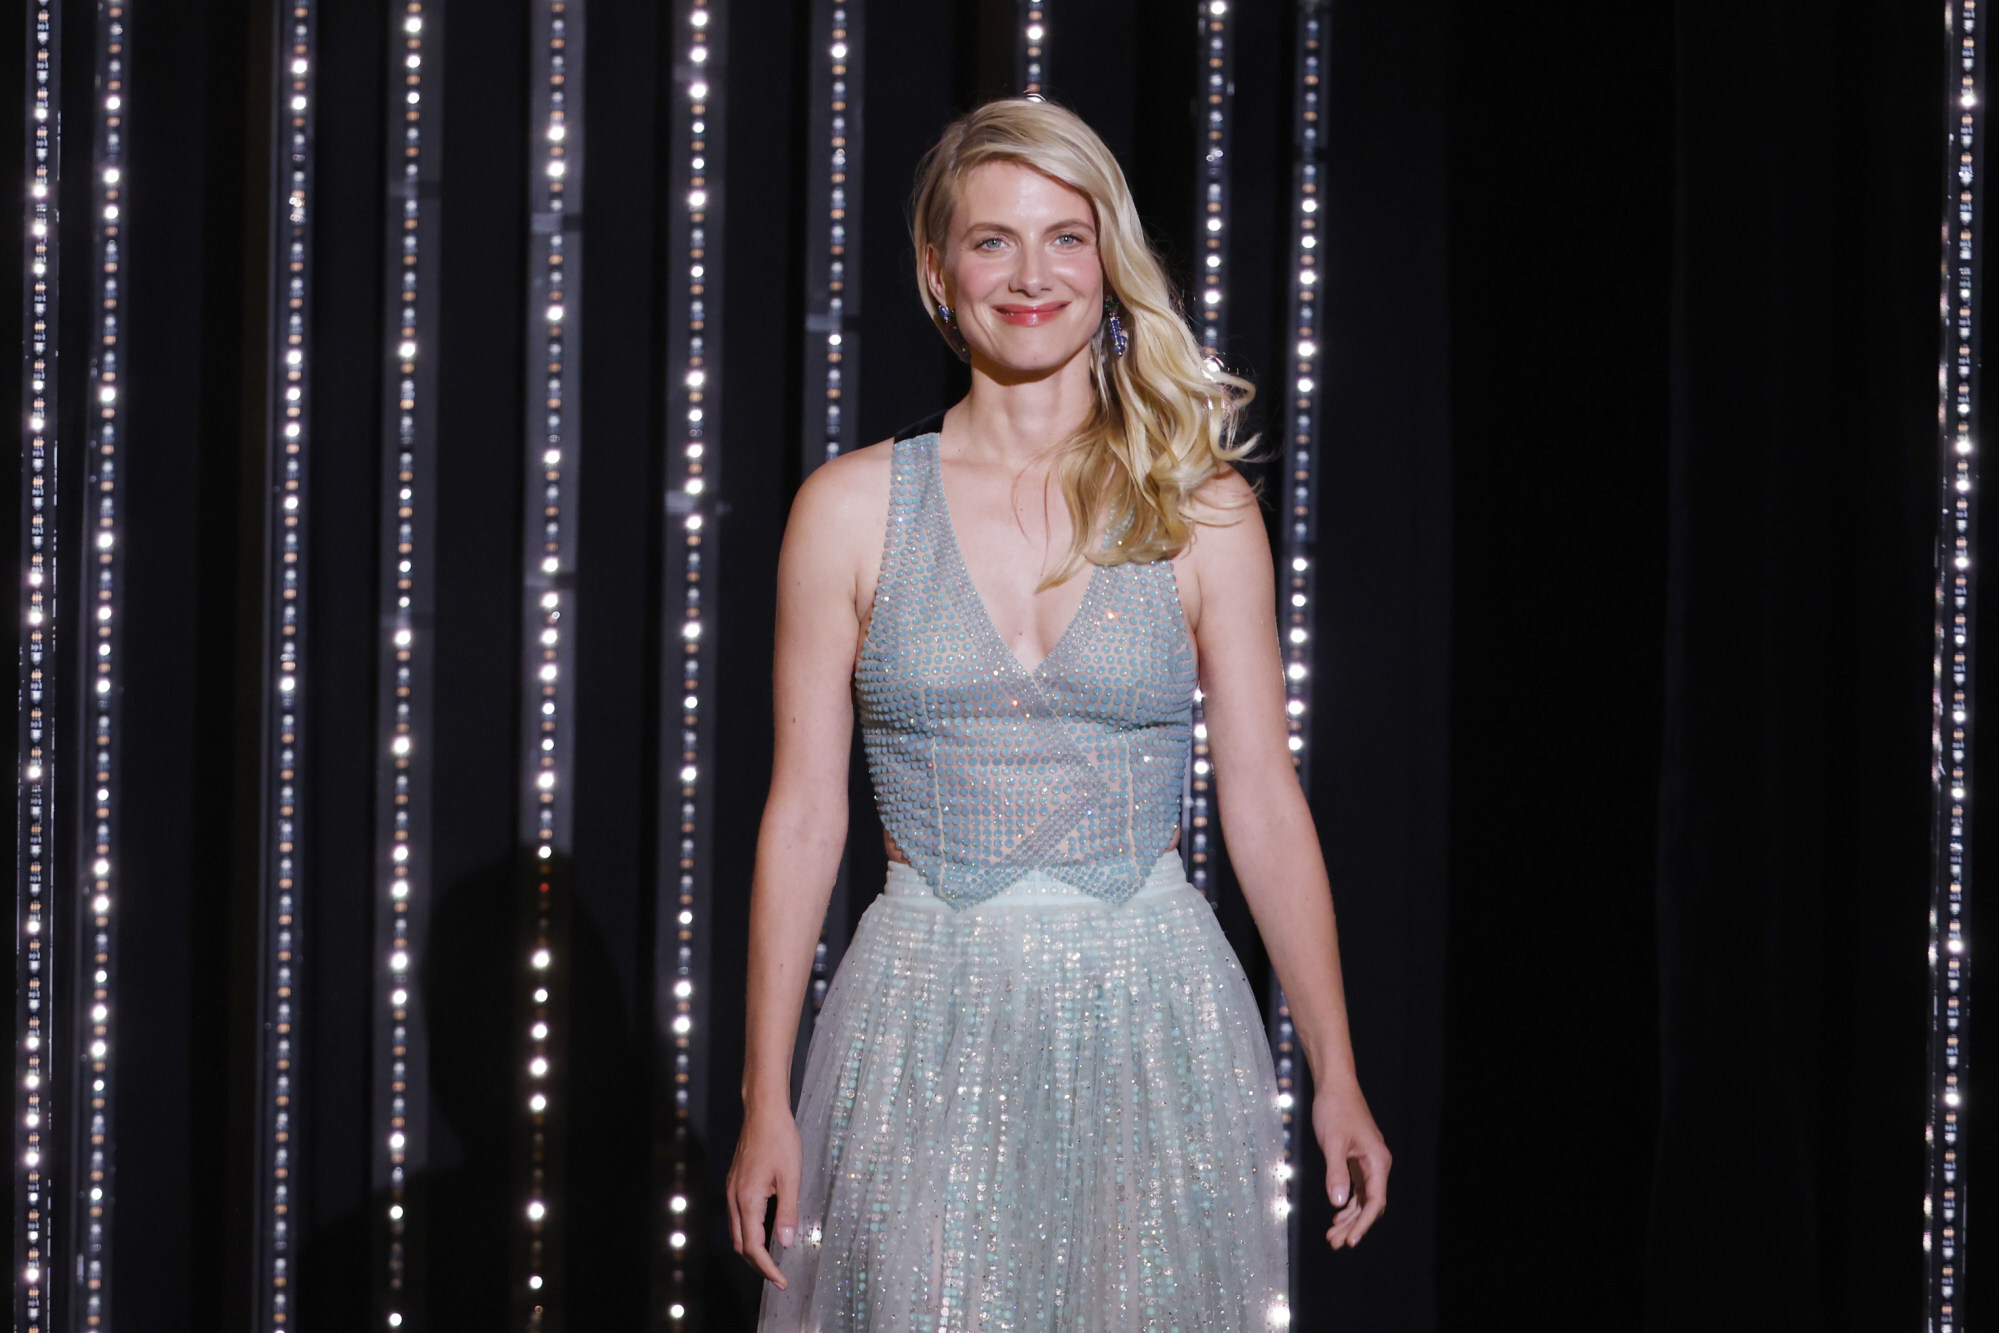 Jury member Mélanie Laurent at the 74th Cannes Film Festival in Cannes, France, on July 6, 2021. Photo: Reuters